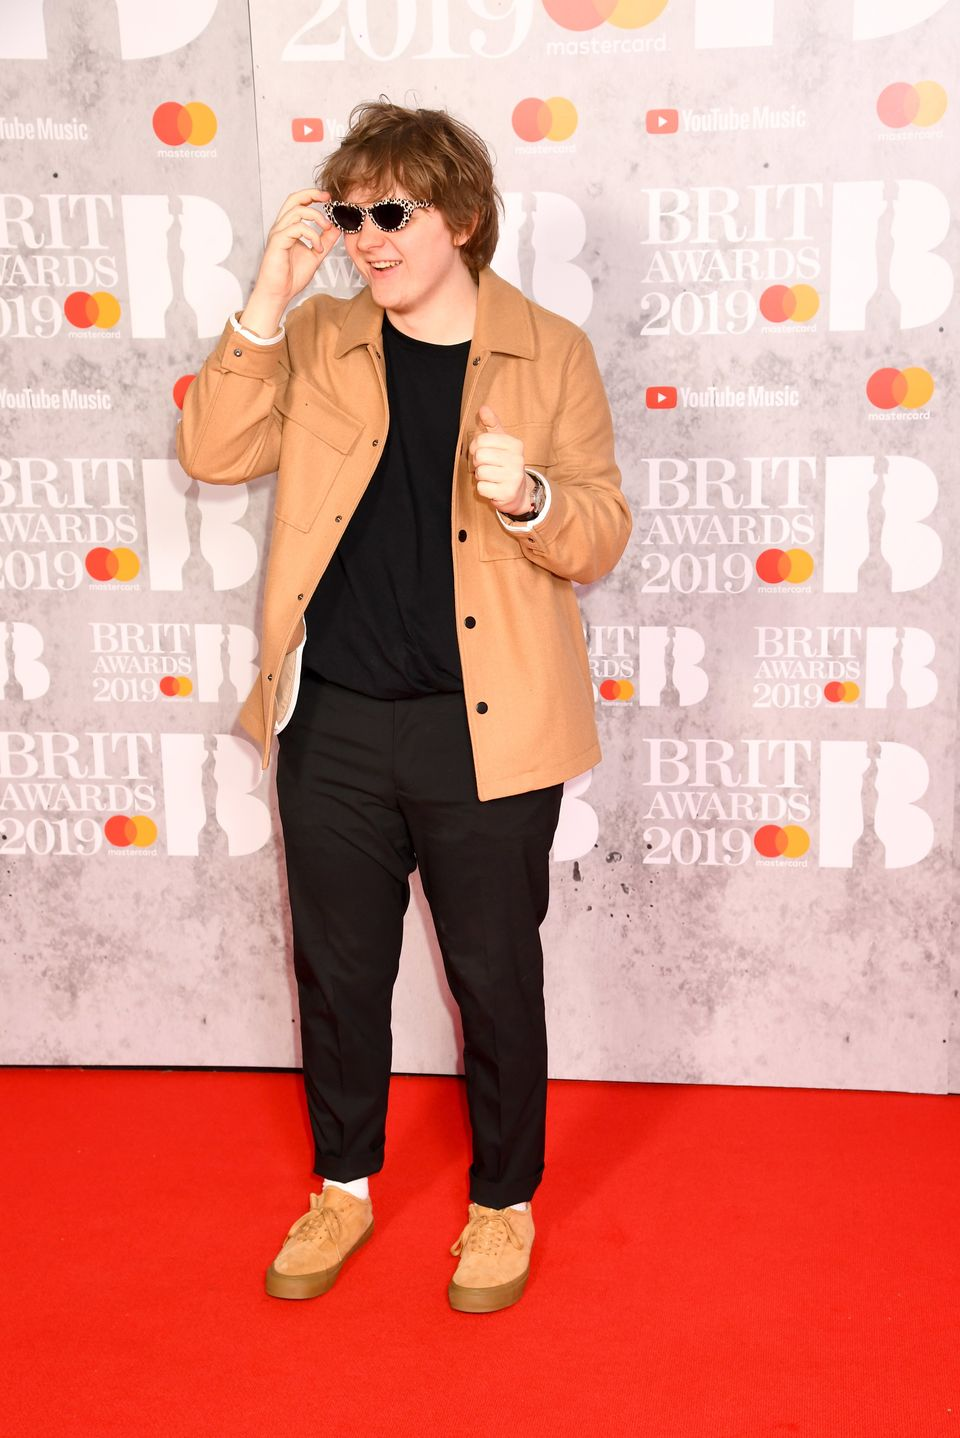 Lewis at the Brit Awards: